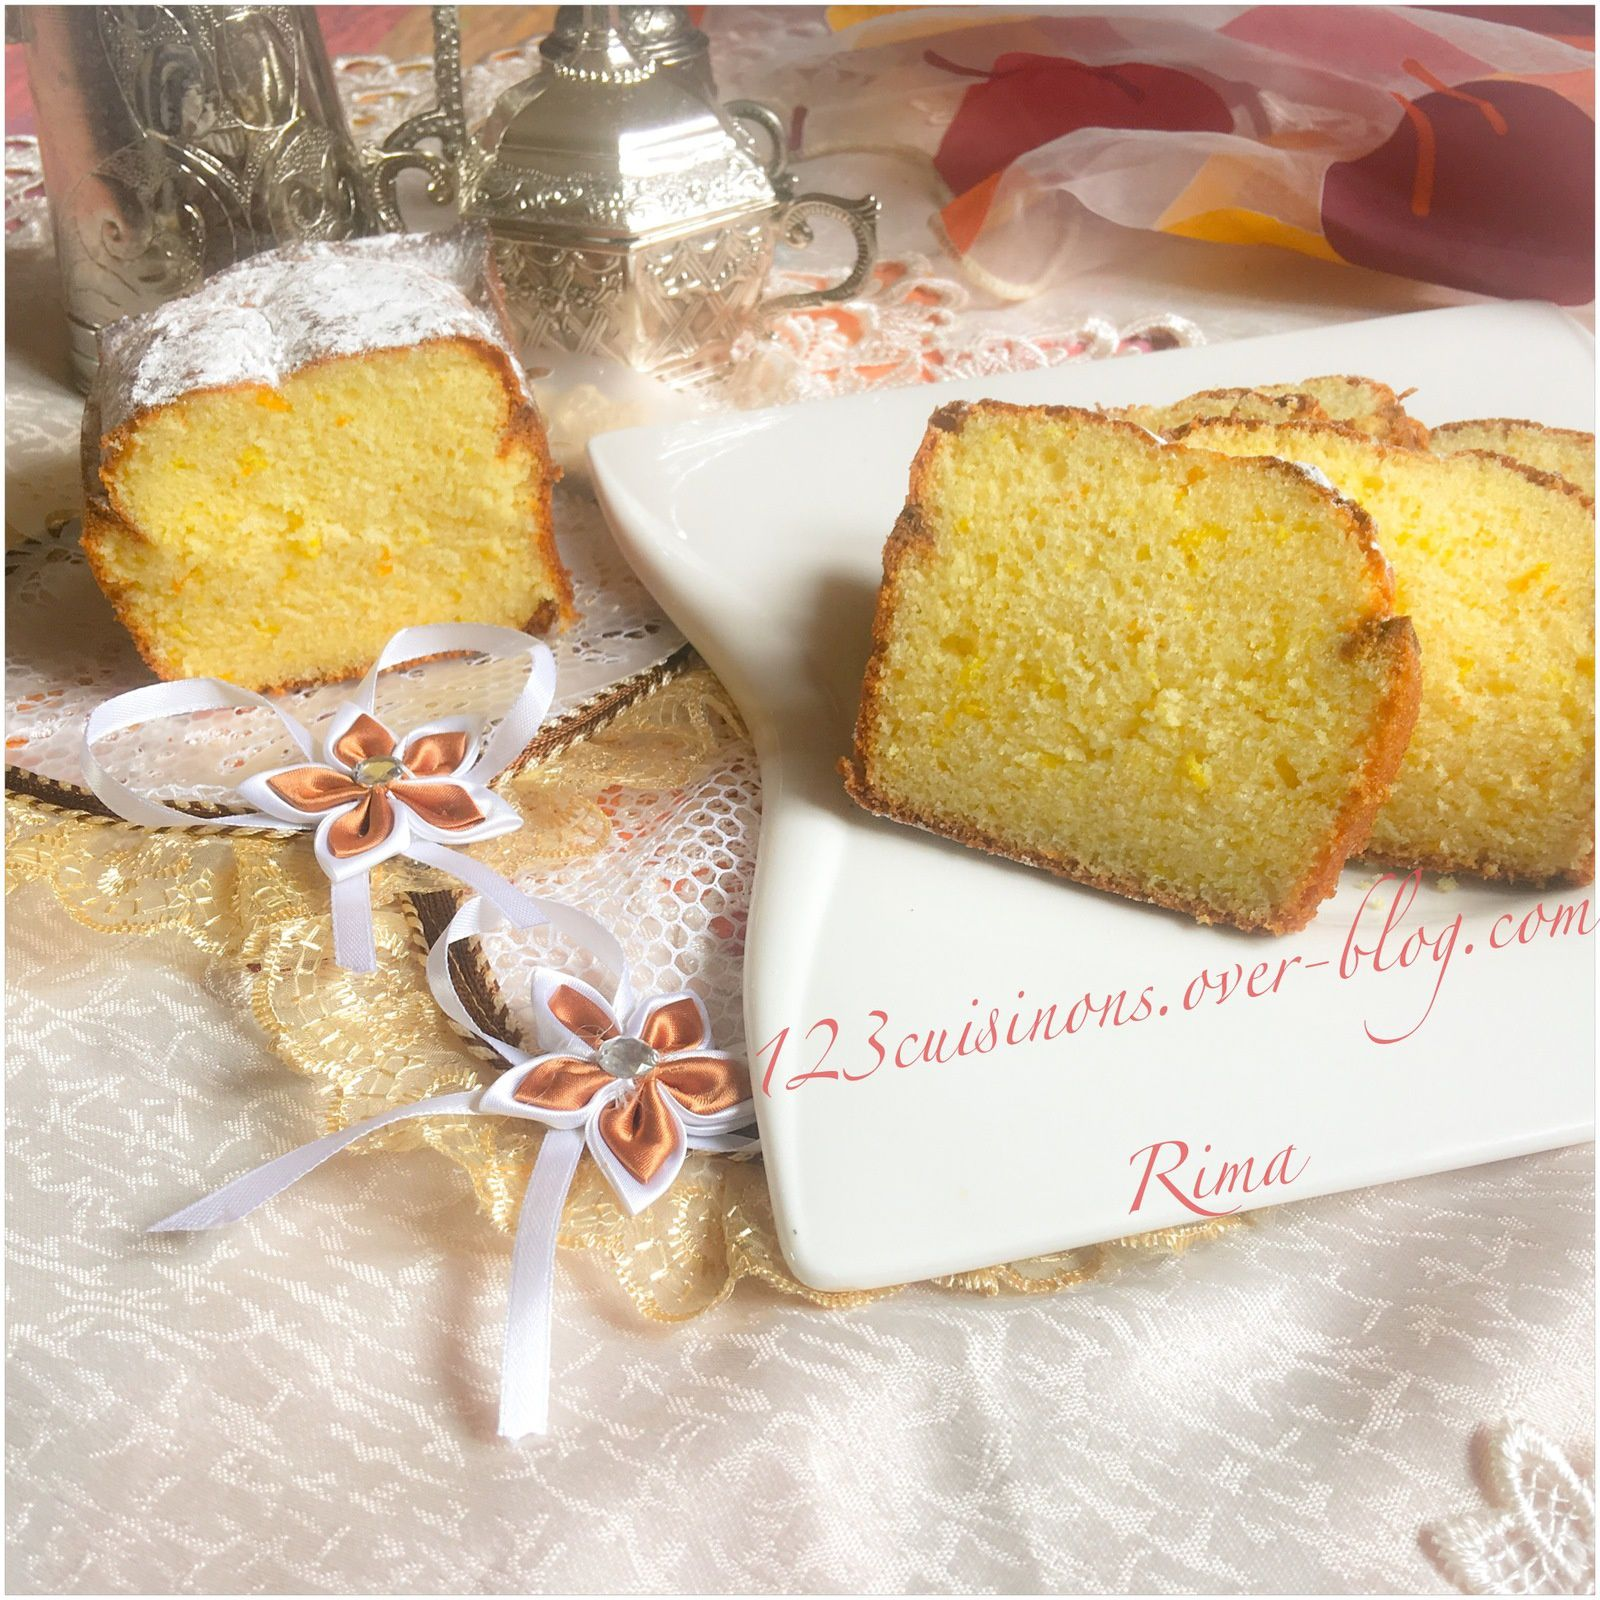 Cake au zeste de citron et d'orange